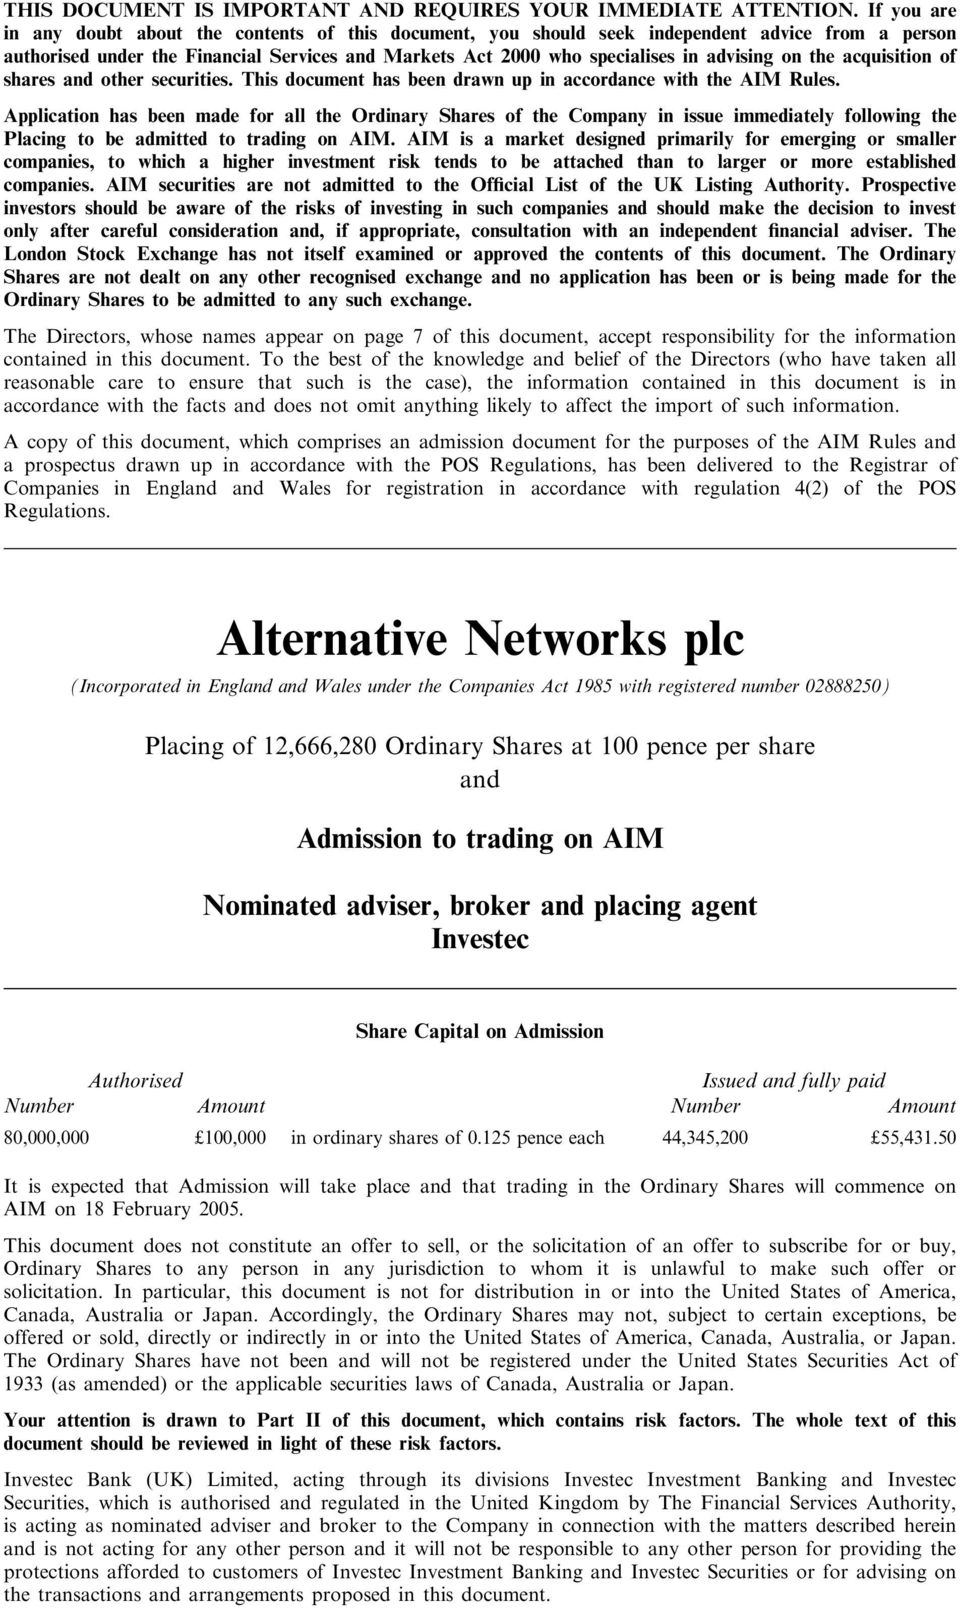 on the acquisition of shares and other securities. This document has been drawn up in accordance with the AIM Rules.